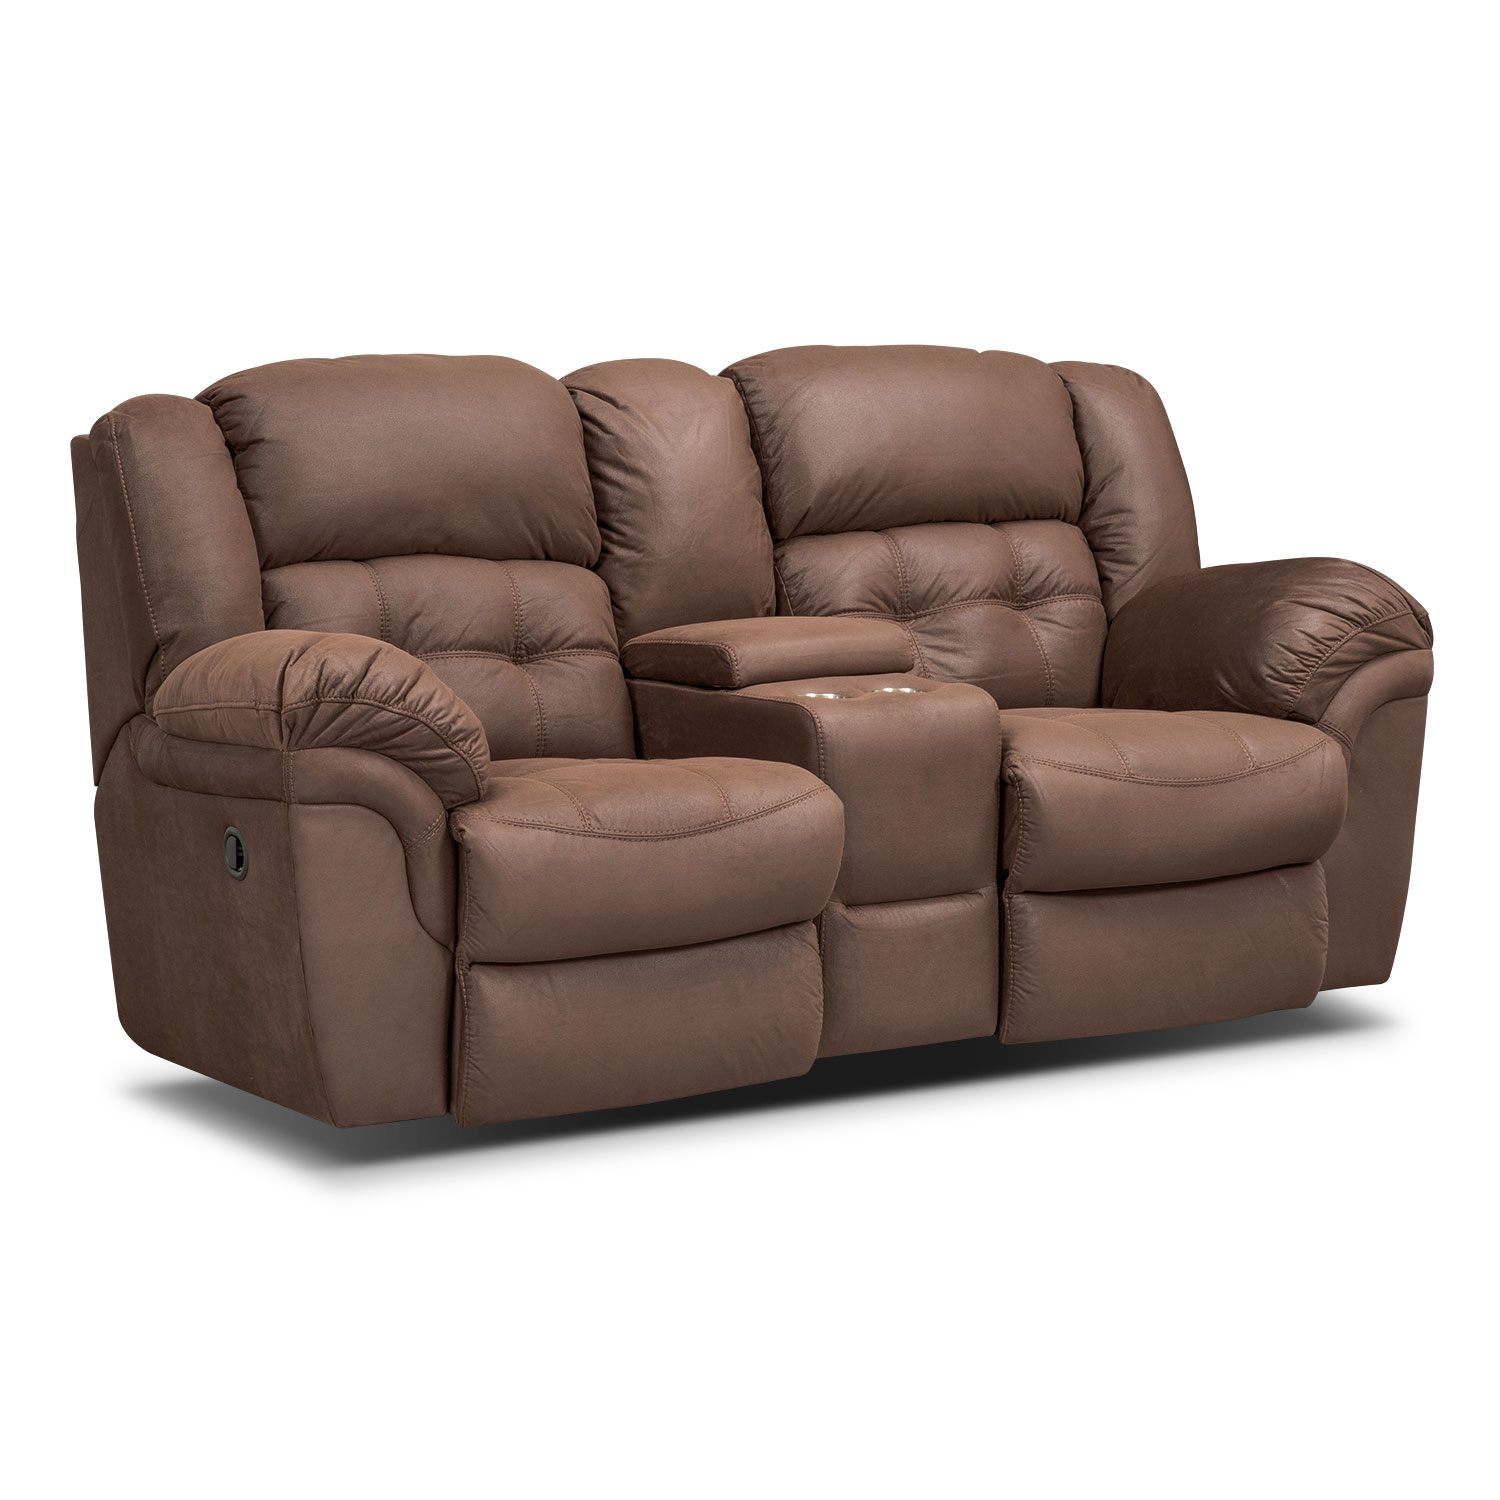 Living Room Furniture - Lancer Chocolate Reclining Loveseat with Console